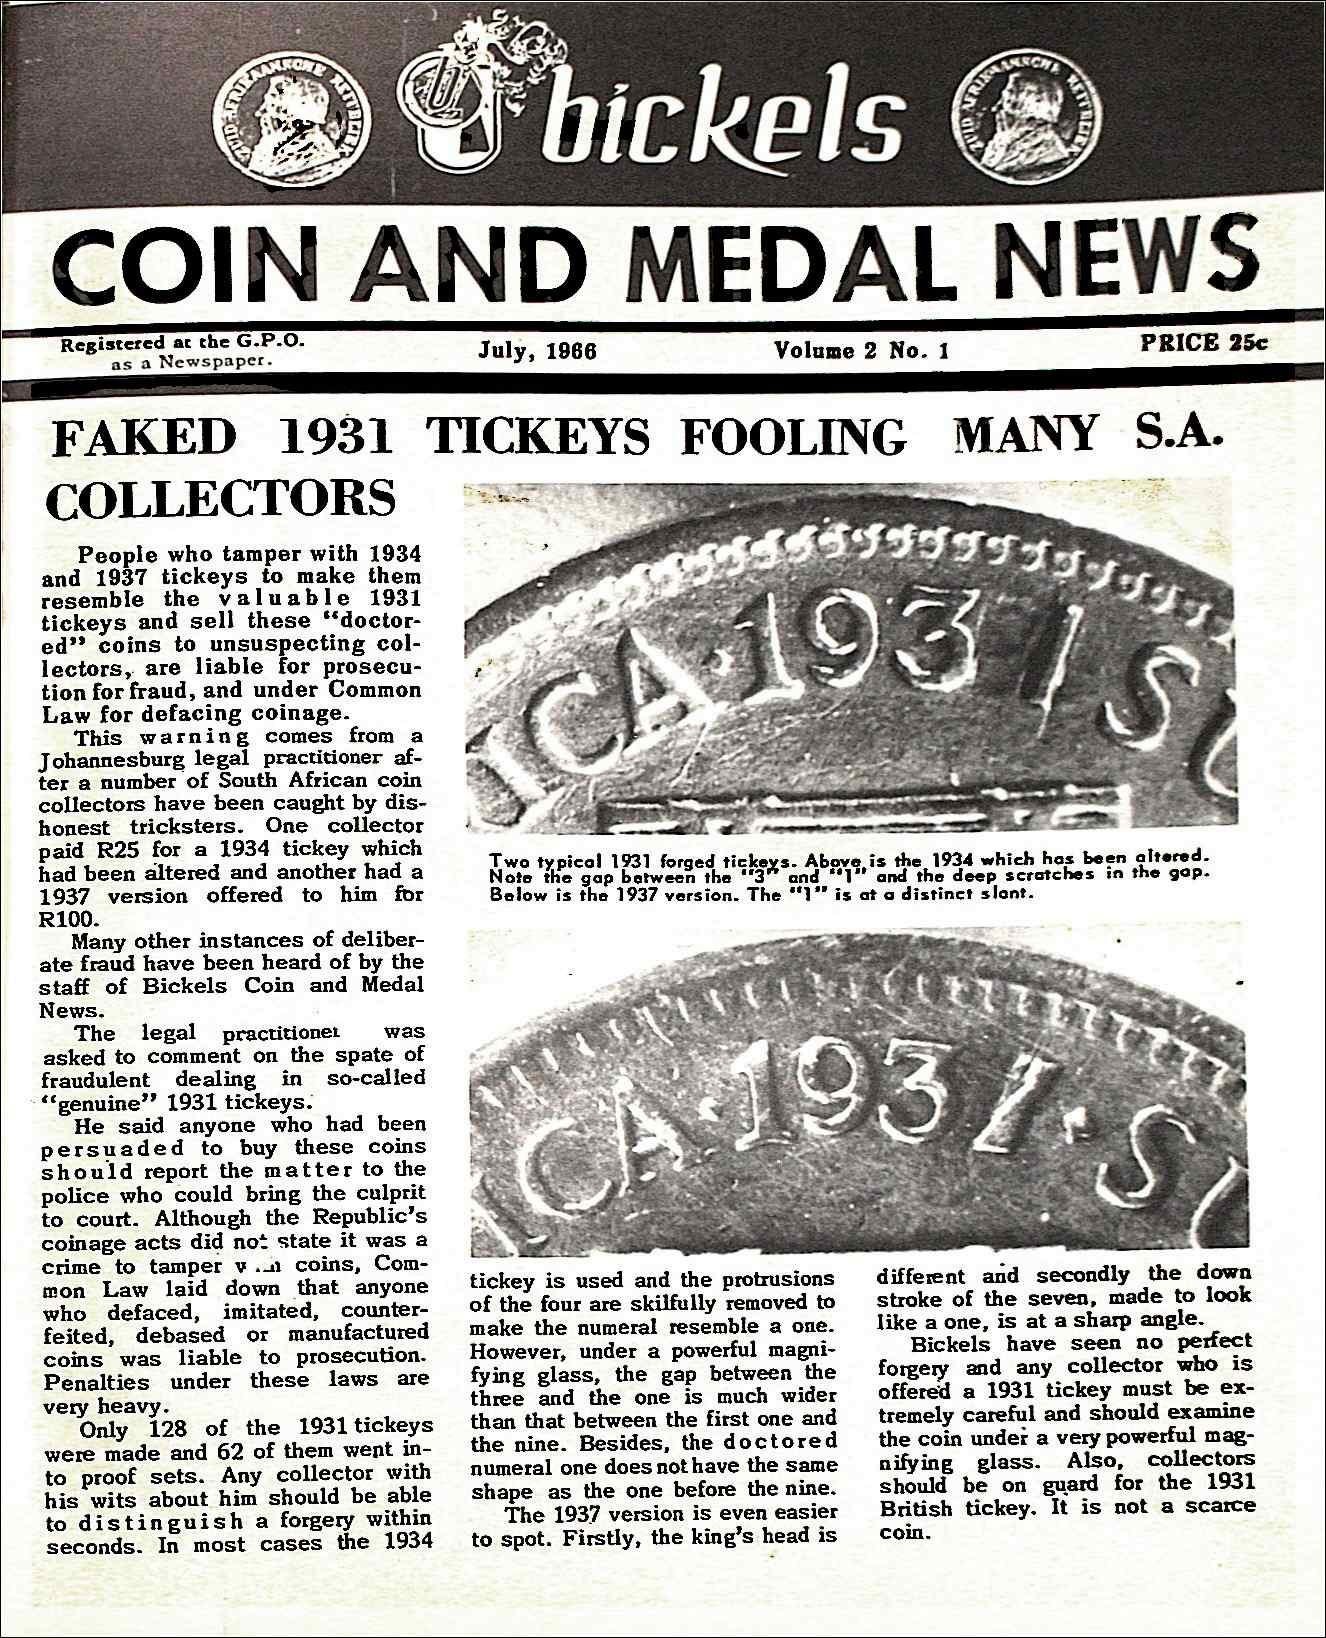 Bickels Coin & Medal News July 1966 Vol 2 No 1